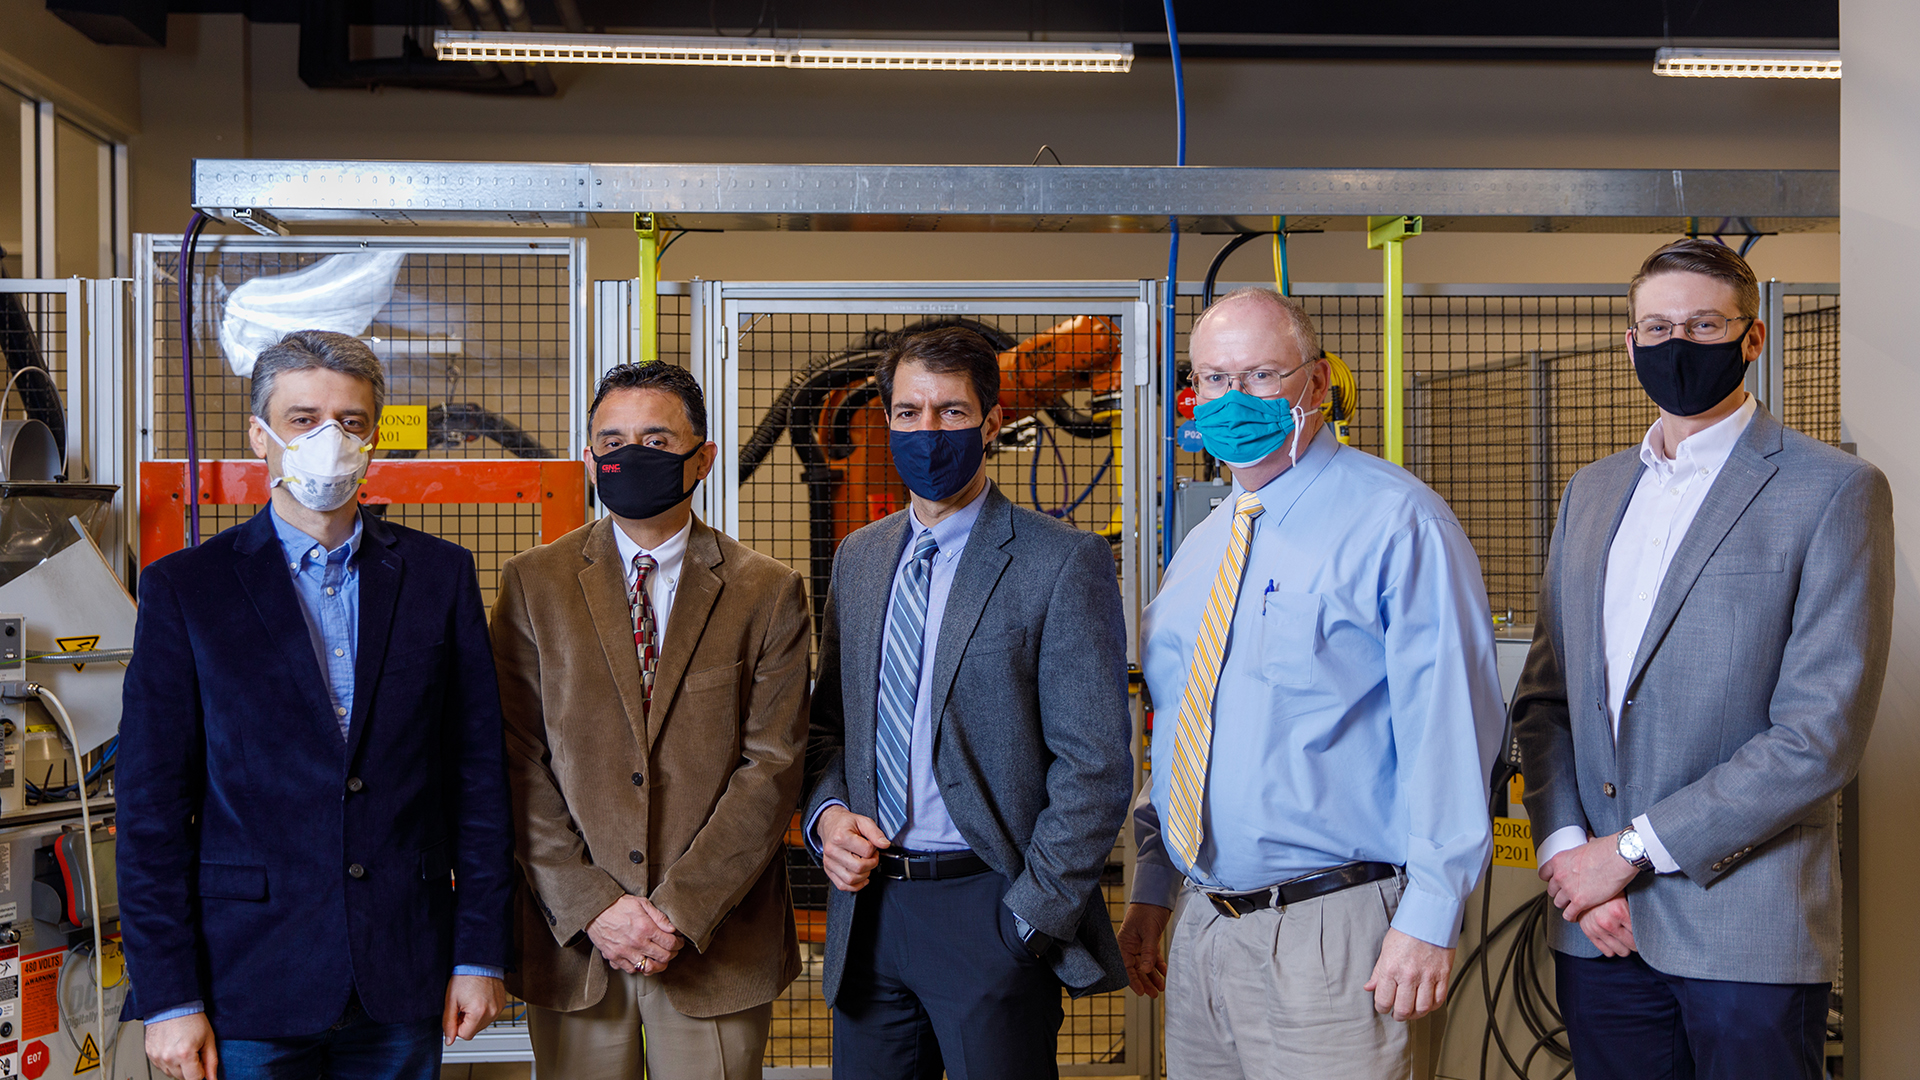 Lineup of faculty all wearing masks in the lab